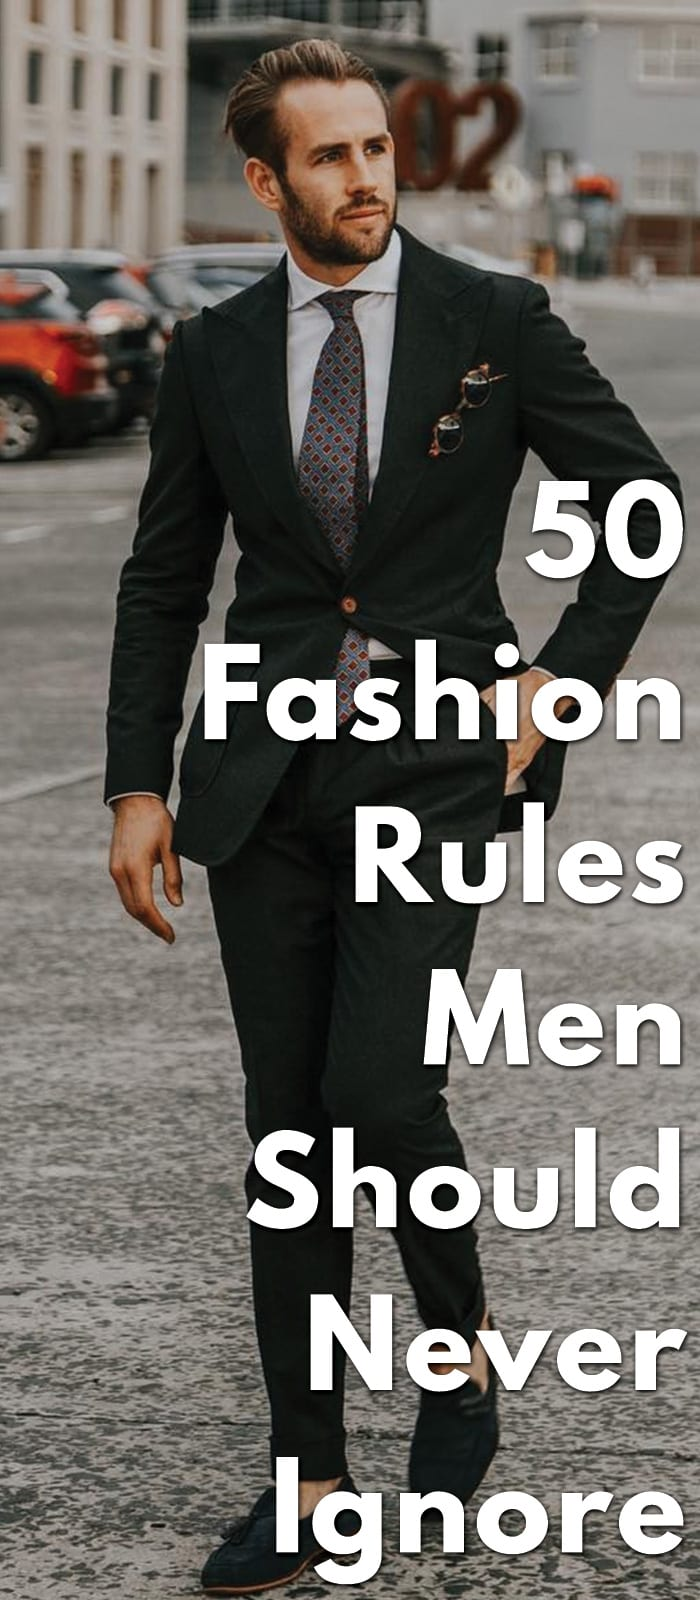 50-Fashion-Rules-Men-Should-Never-Ignore...